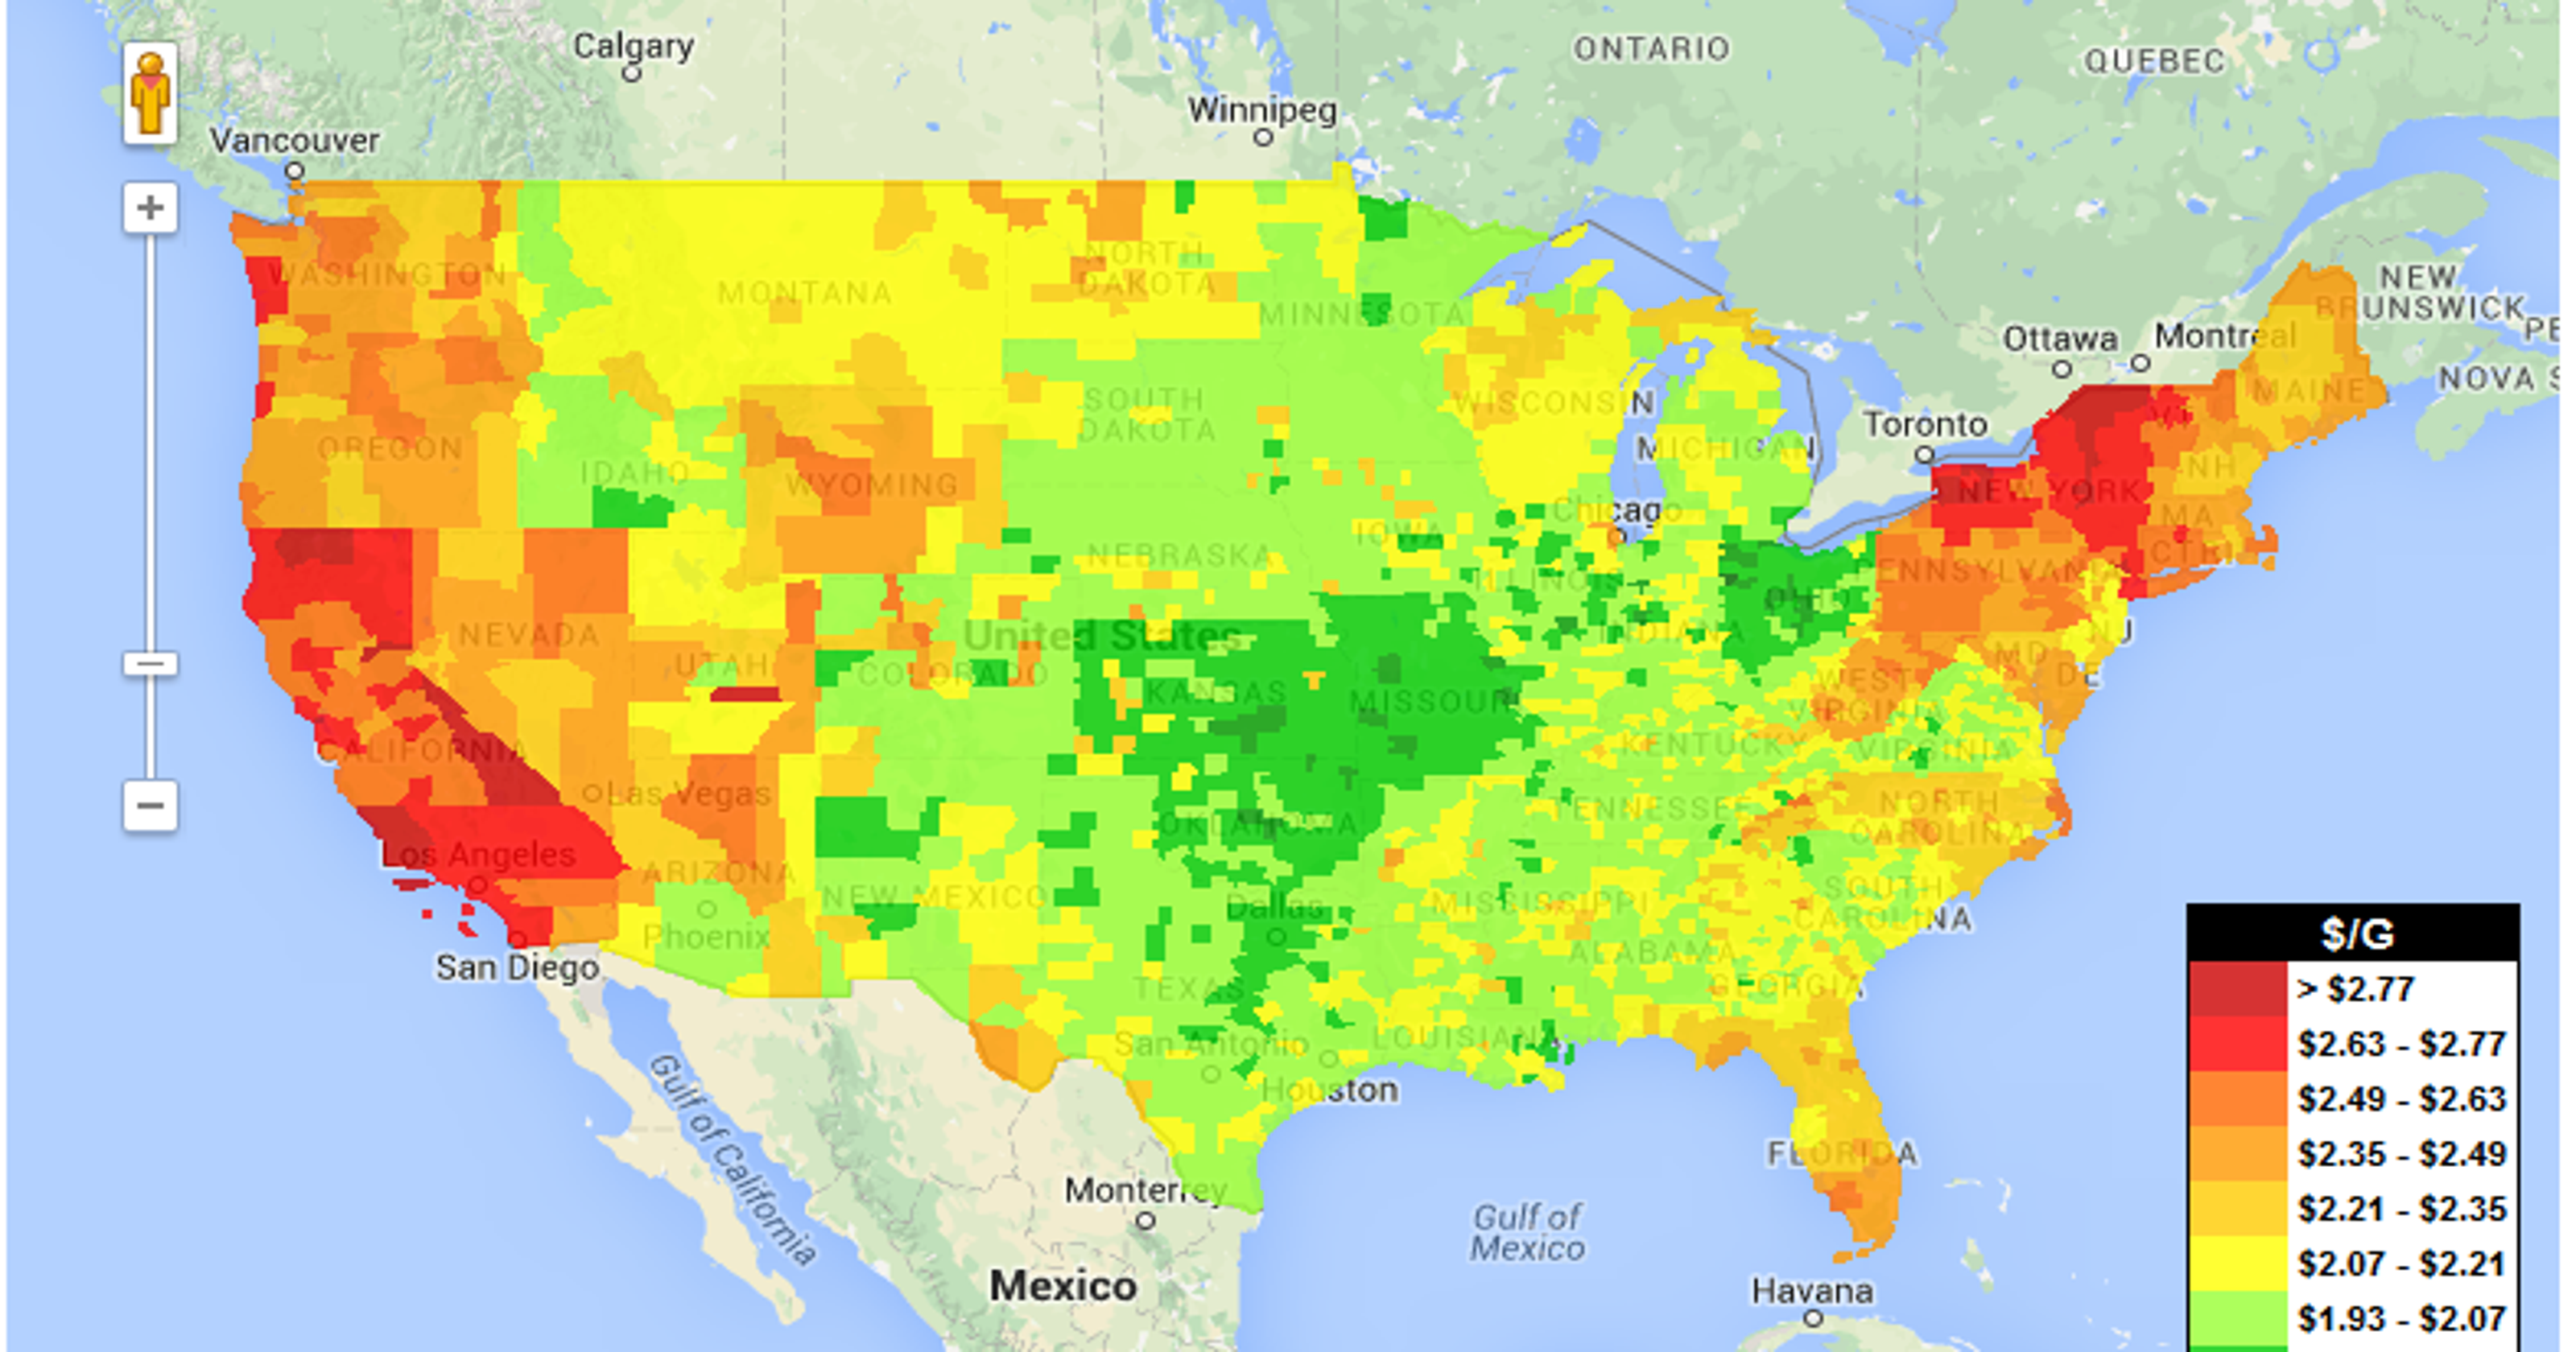 Use This Us Gas Price Heat Map To Design Cheapest Possible Road Trip - Gas-prices-us-map